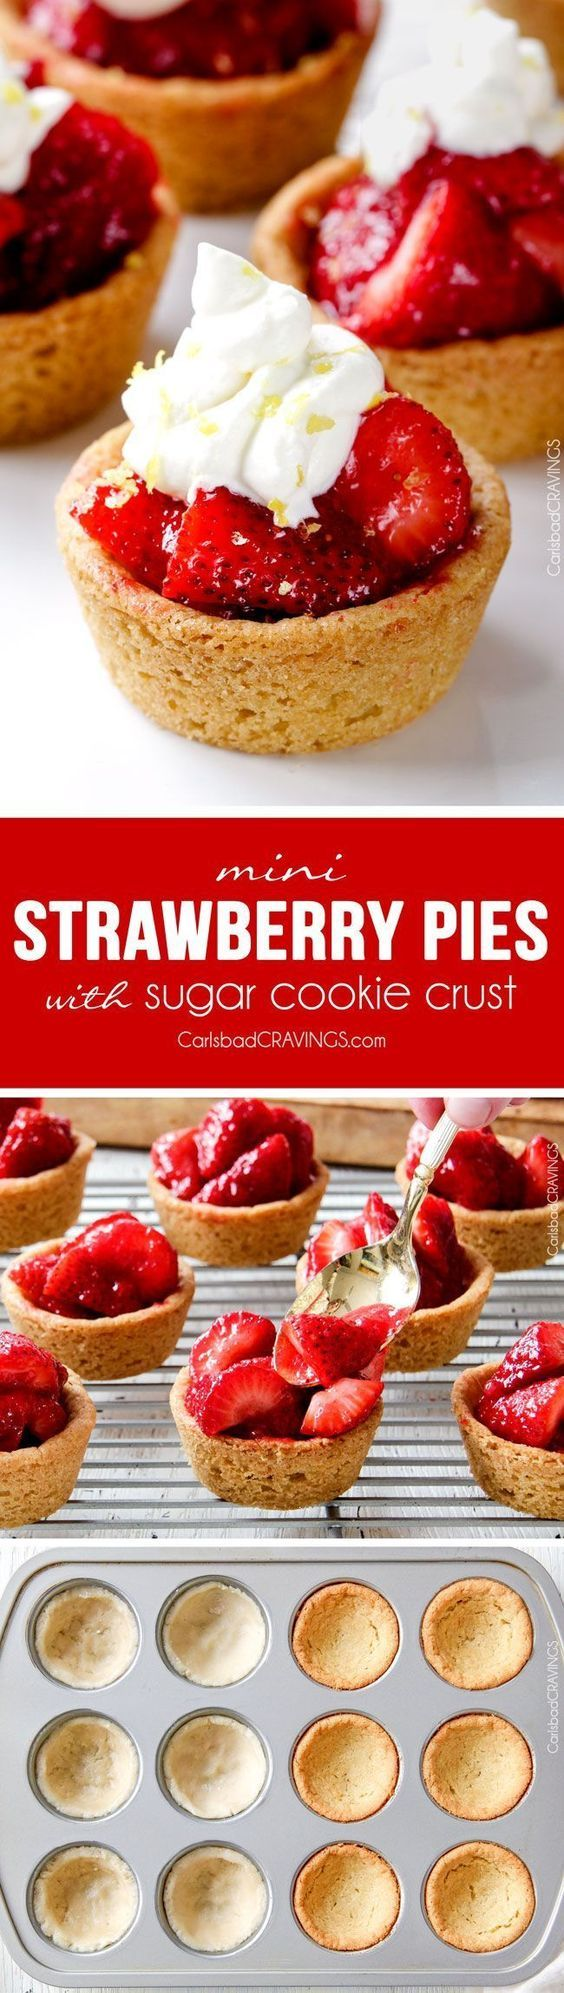 The best strawberry pie filling nestled in easy soft, buttery, sugar cookie crusts make the most adorable, crowd pleasing and delicious Mini Strawberry Pies! And they are make ahead for stress free entertaining!